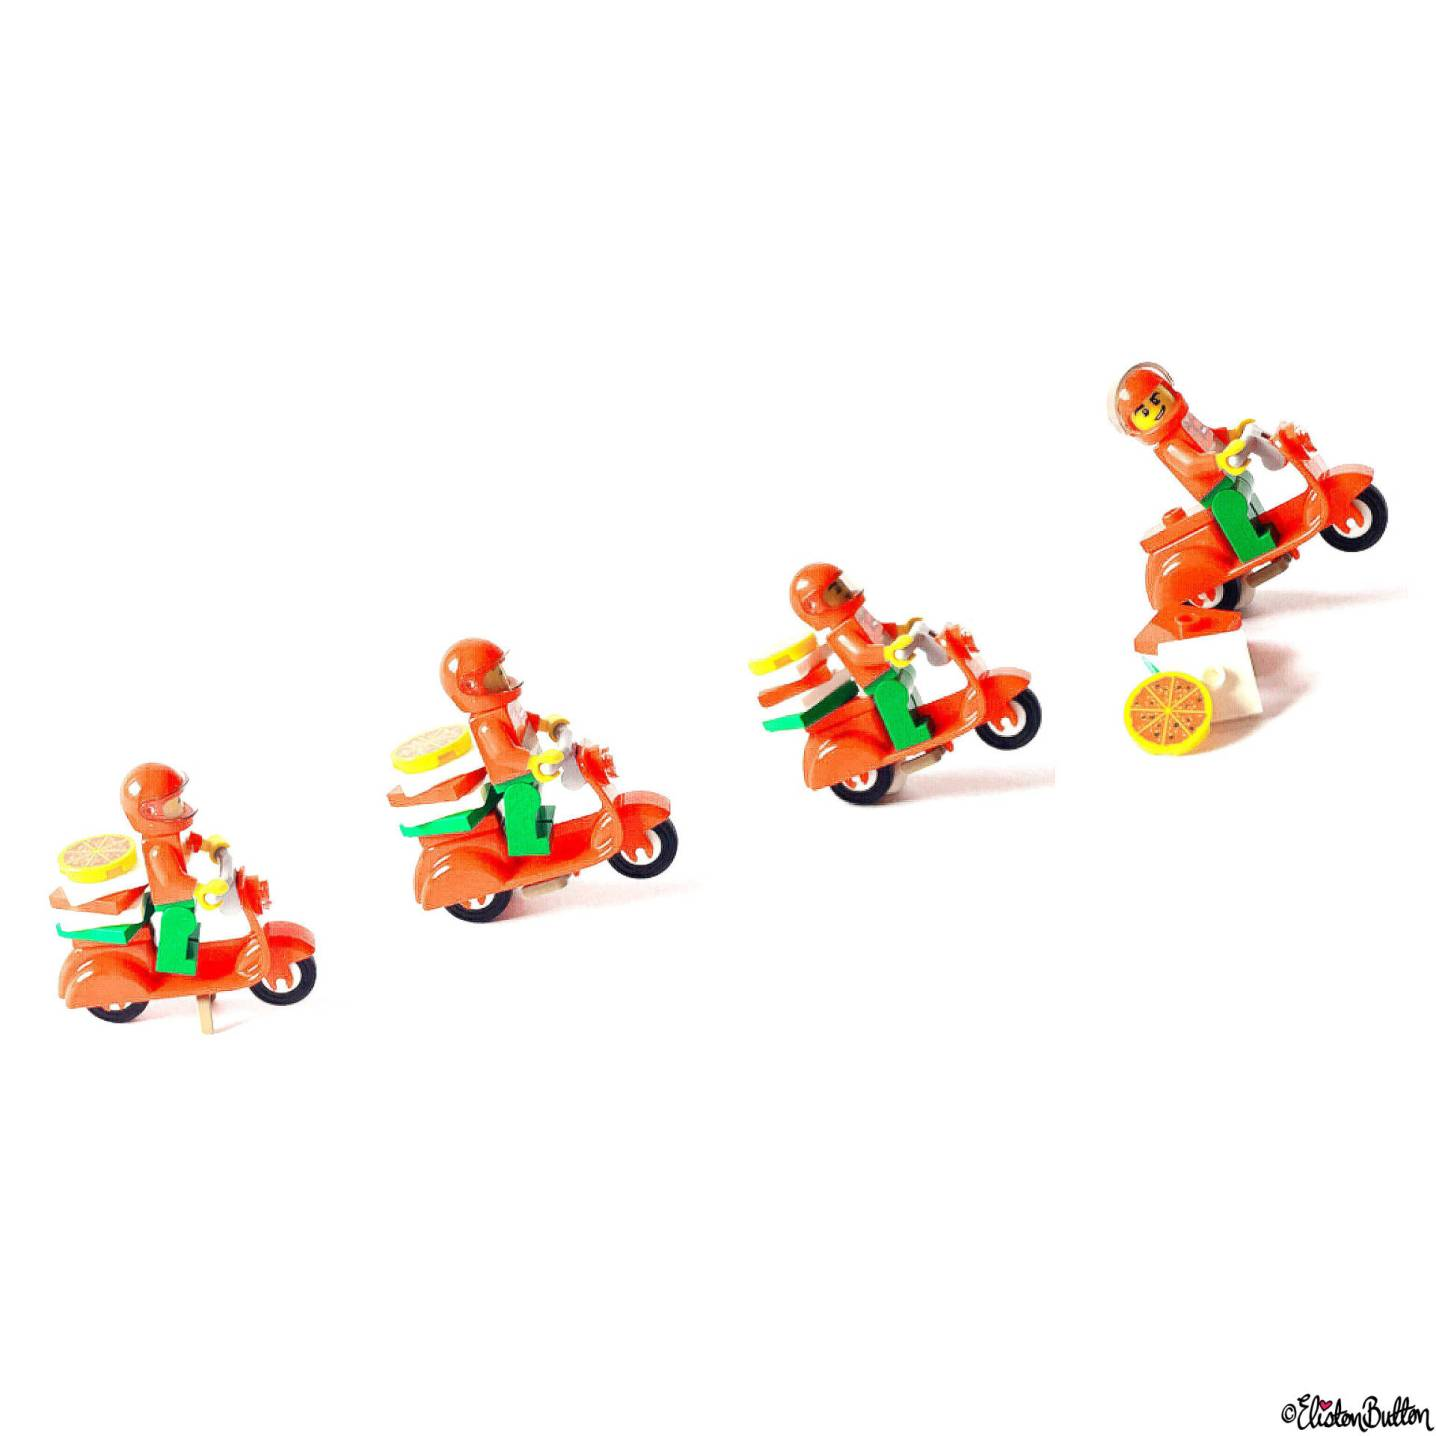 Day 20 - Movement - Lego Minifigure and Vespa Scooter - Photo-a-Day – March 2016 at www.elistonbutton.com - Eliston Button - That Crafty Kid – Art, Design, Craft & Adventure.